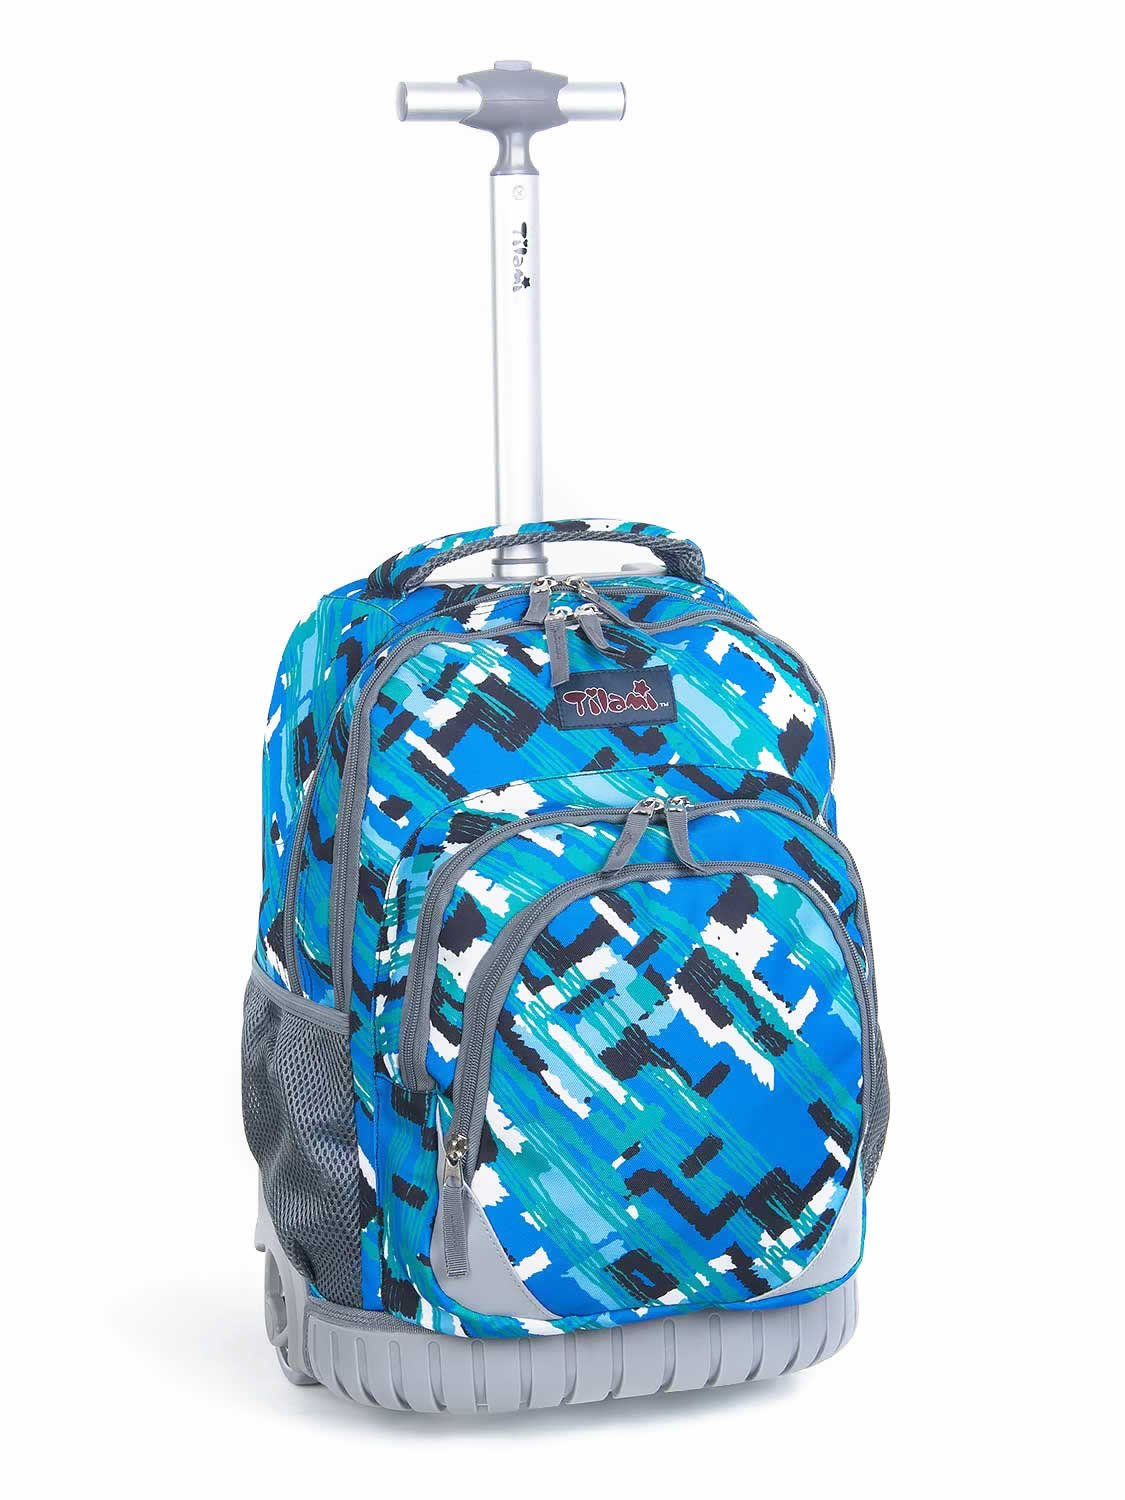 Tilami New Antifouling Design 18 Inch Oversized Load Multi-Compartment Wheeled Rolling Backpack Luggage for Kids … (Blue Canvas)